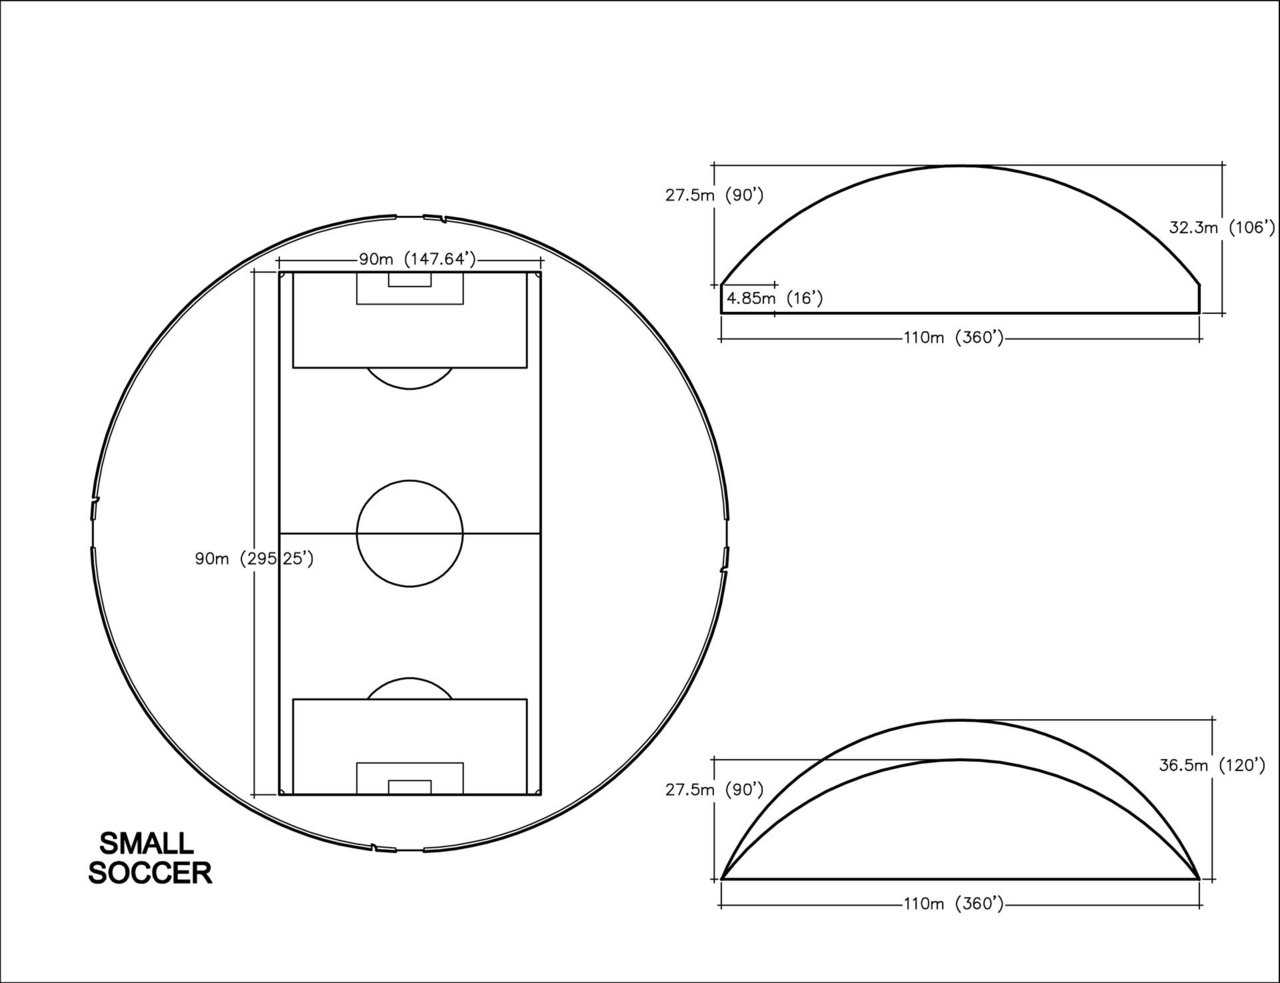 Small Soccer Practice Dome — 110m (360' diameter)